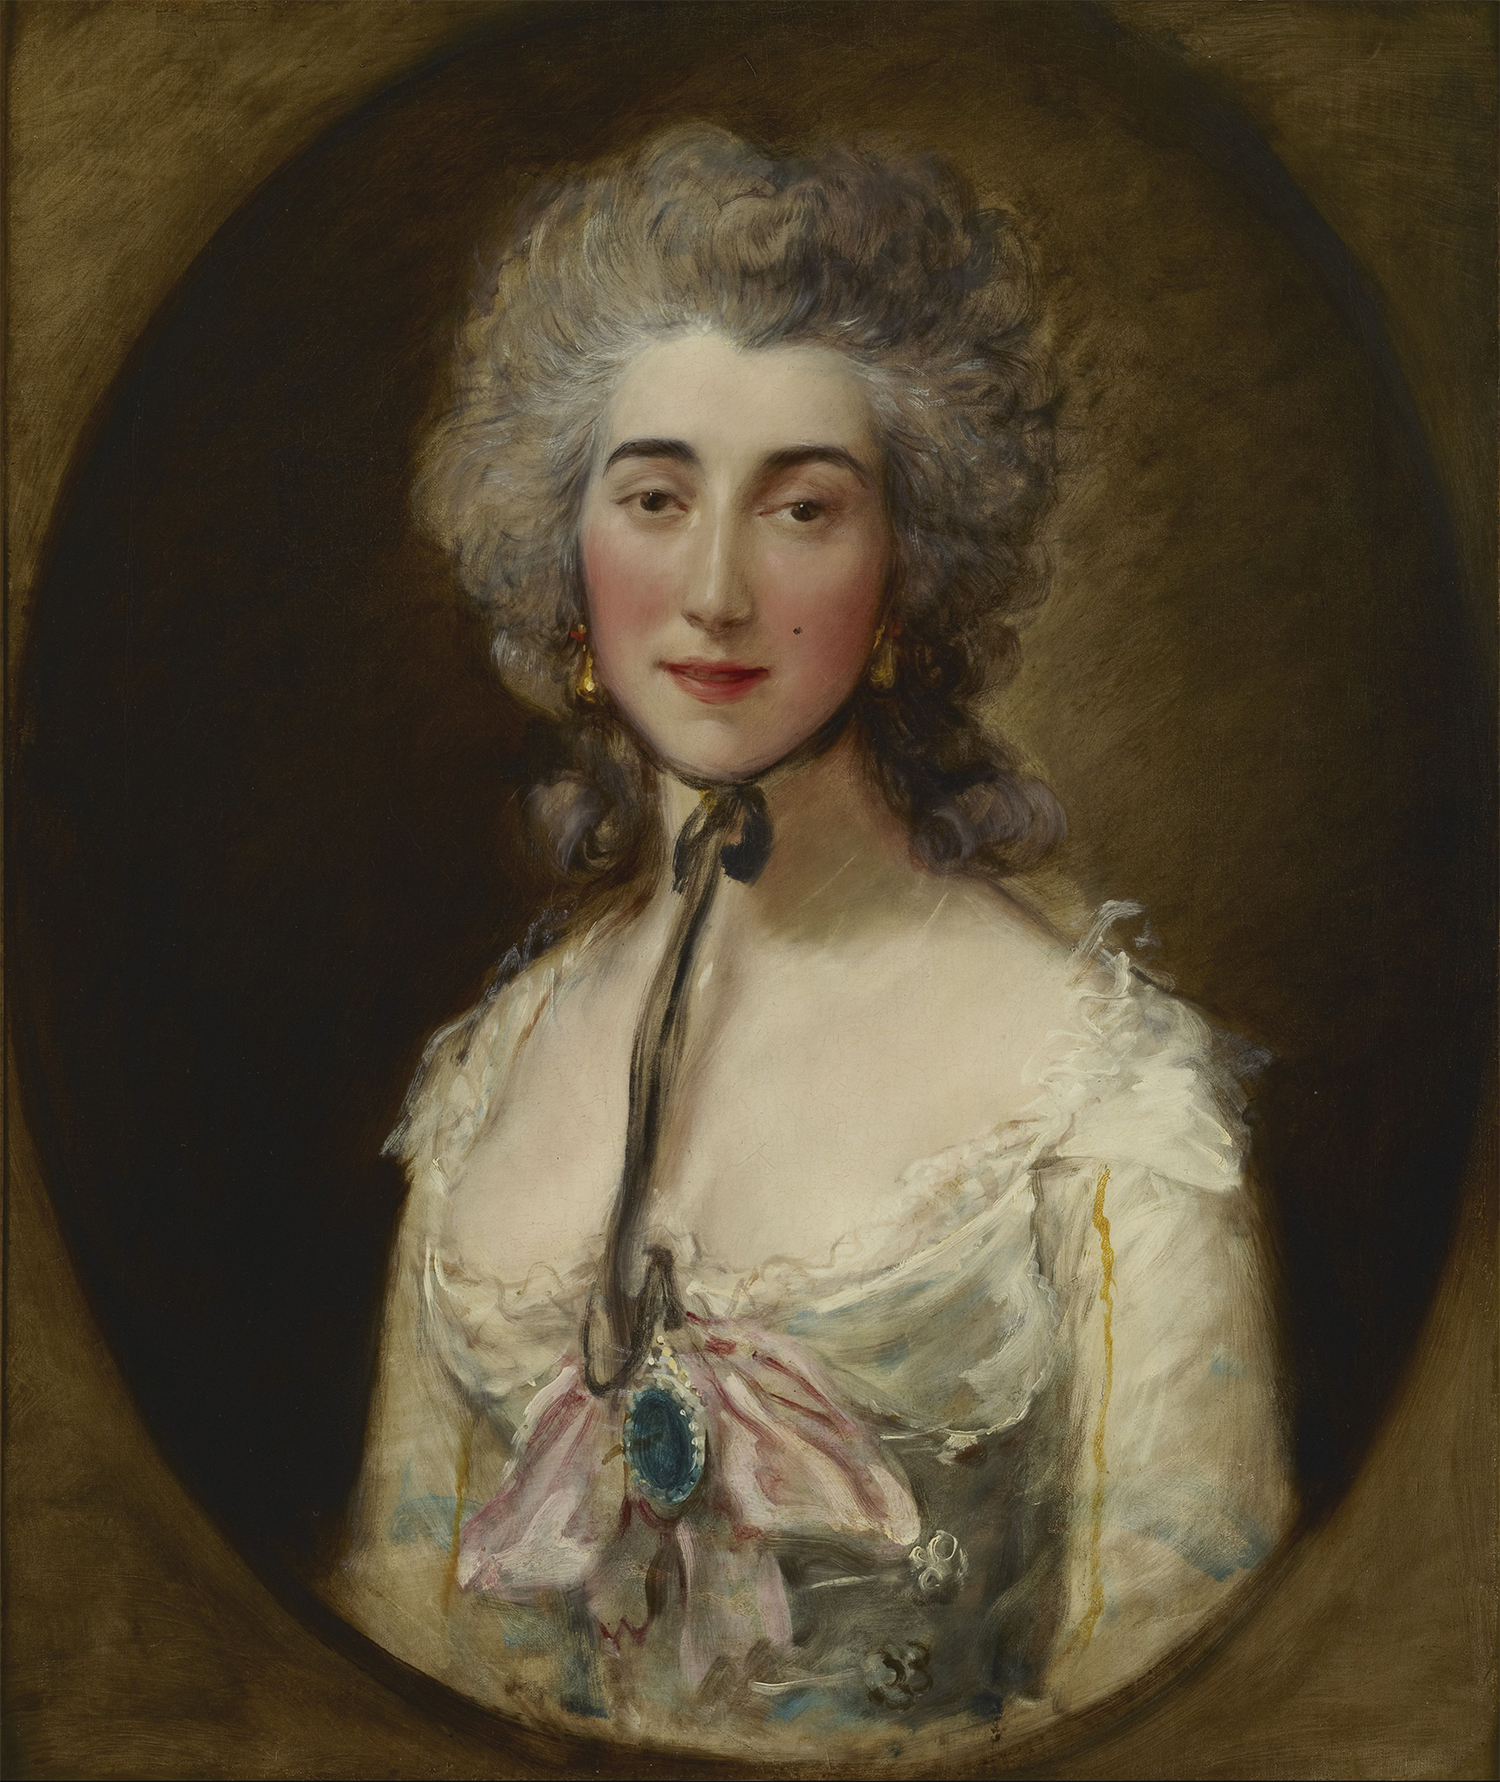 Grace Elliott painted by Thomas Gainesborough, Frick Collection, NY, NY, USA